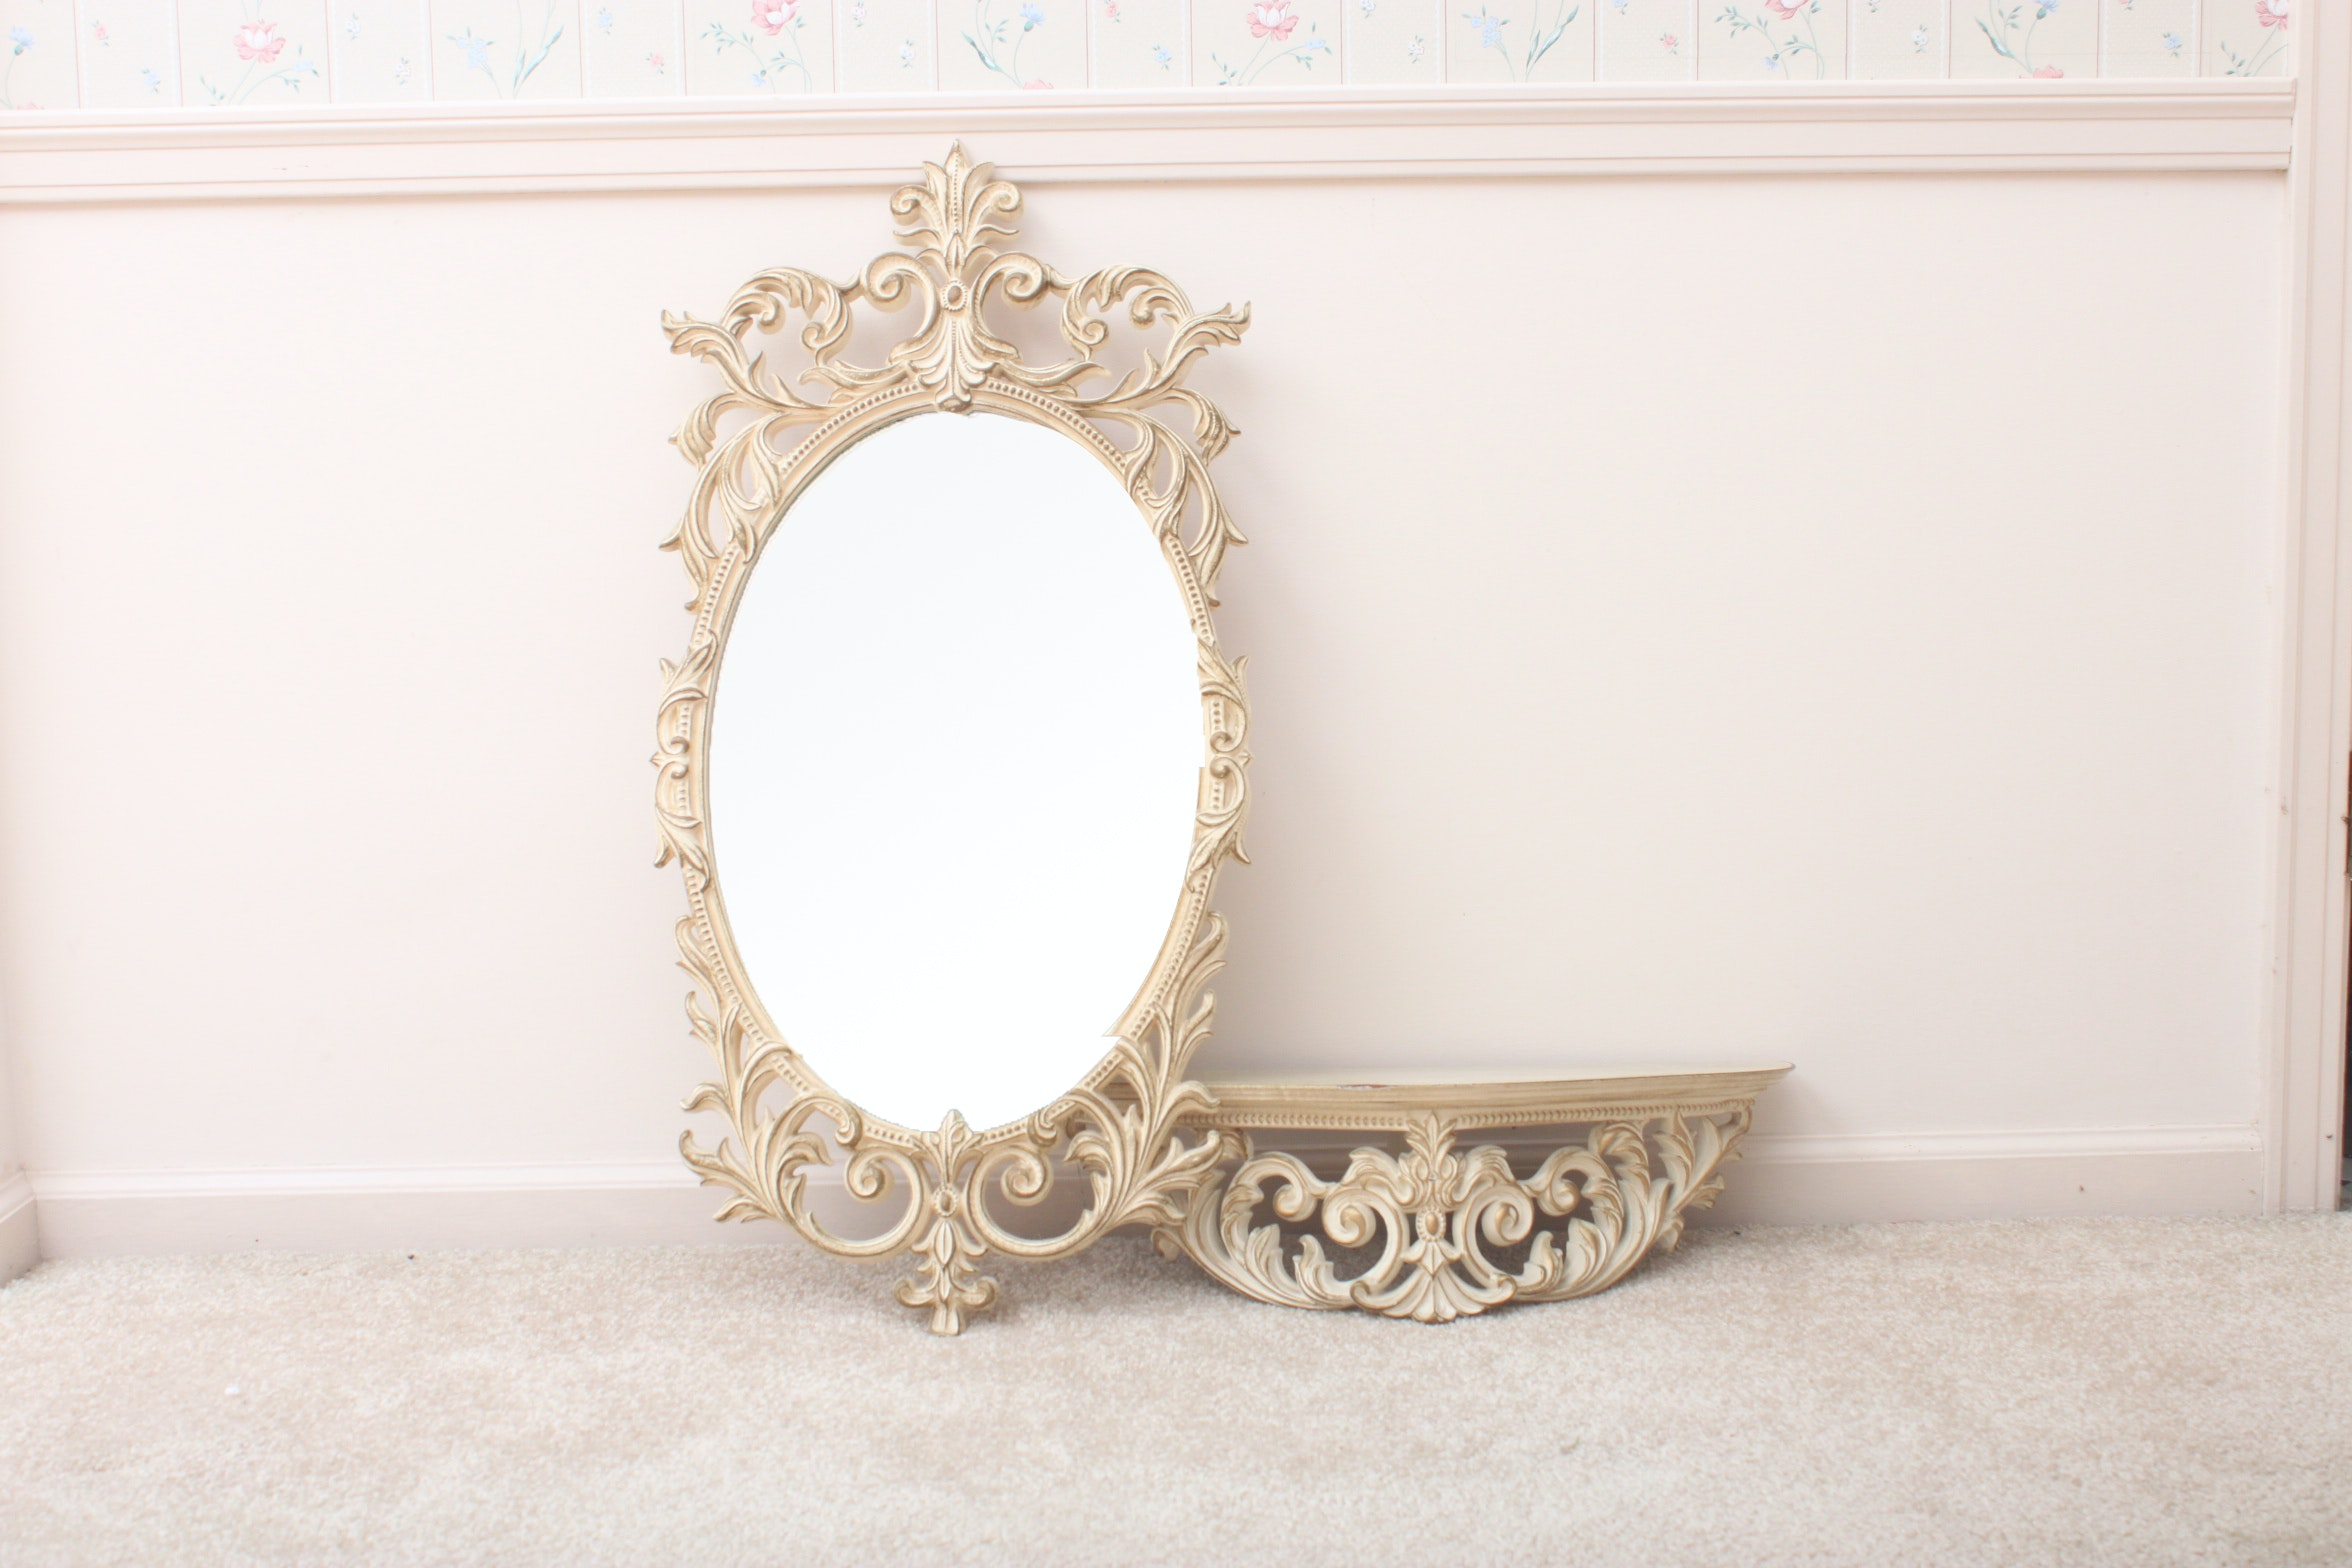 Vintage Rococo Style Turner Wall Mirror and Shelf